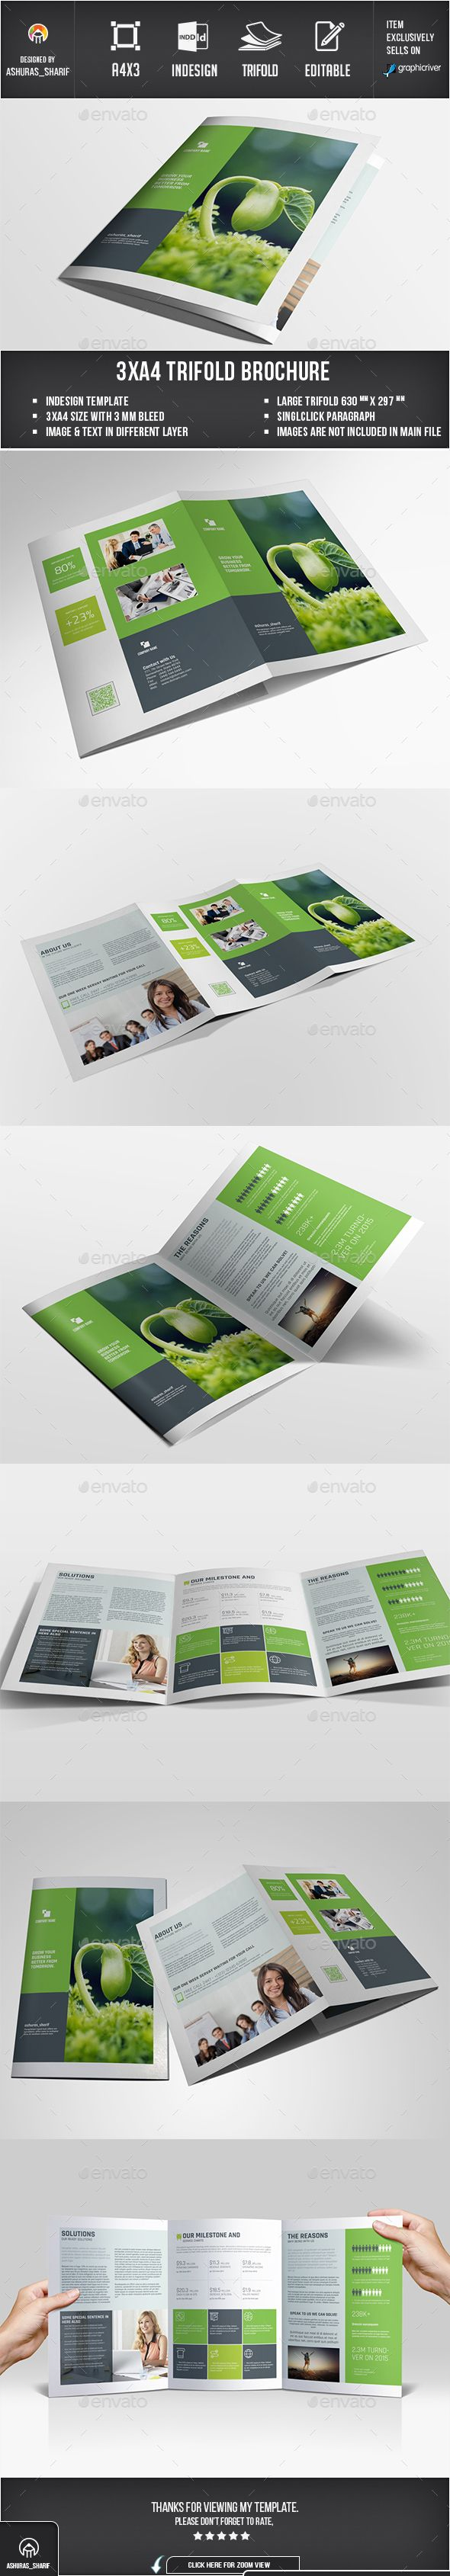 78 best Brochure Templates images on Pinterest | Brochure template ...